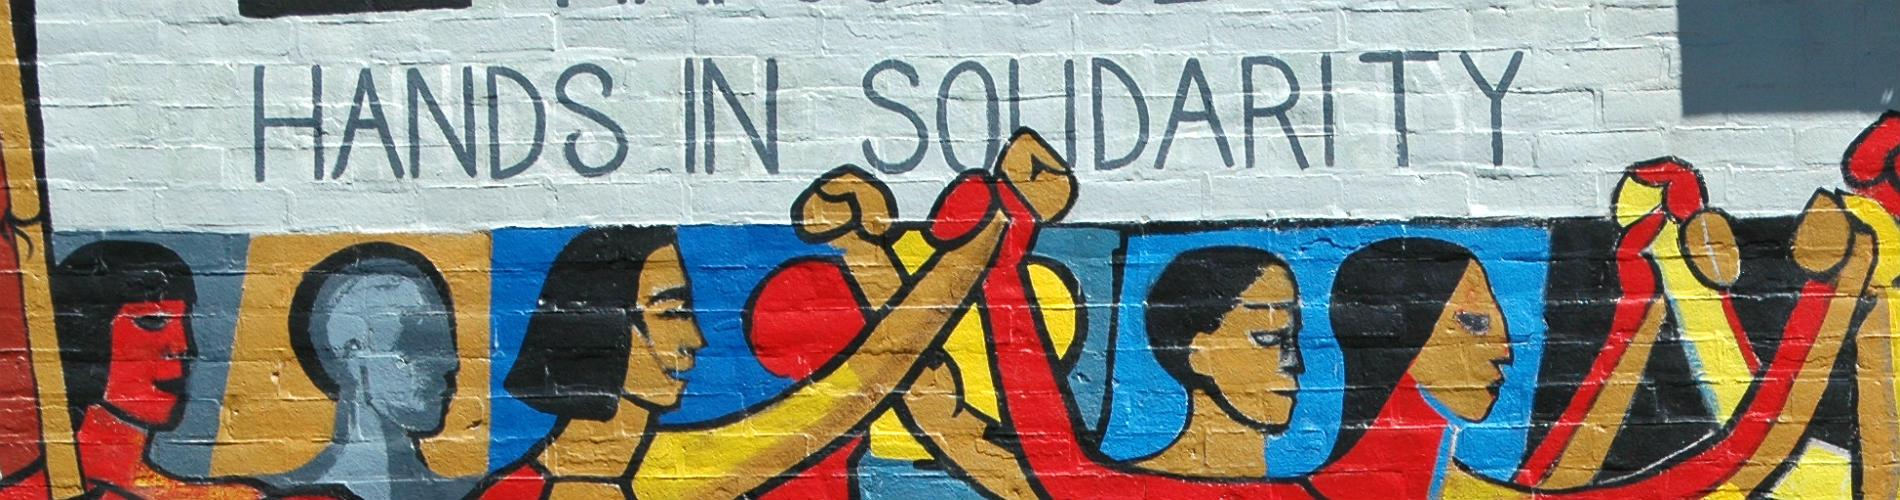 Photograph of the 'Hands in Solidarity, Hands of Freedom' mural on the walls of a trade union building in Chicago, U.S.A.